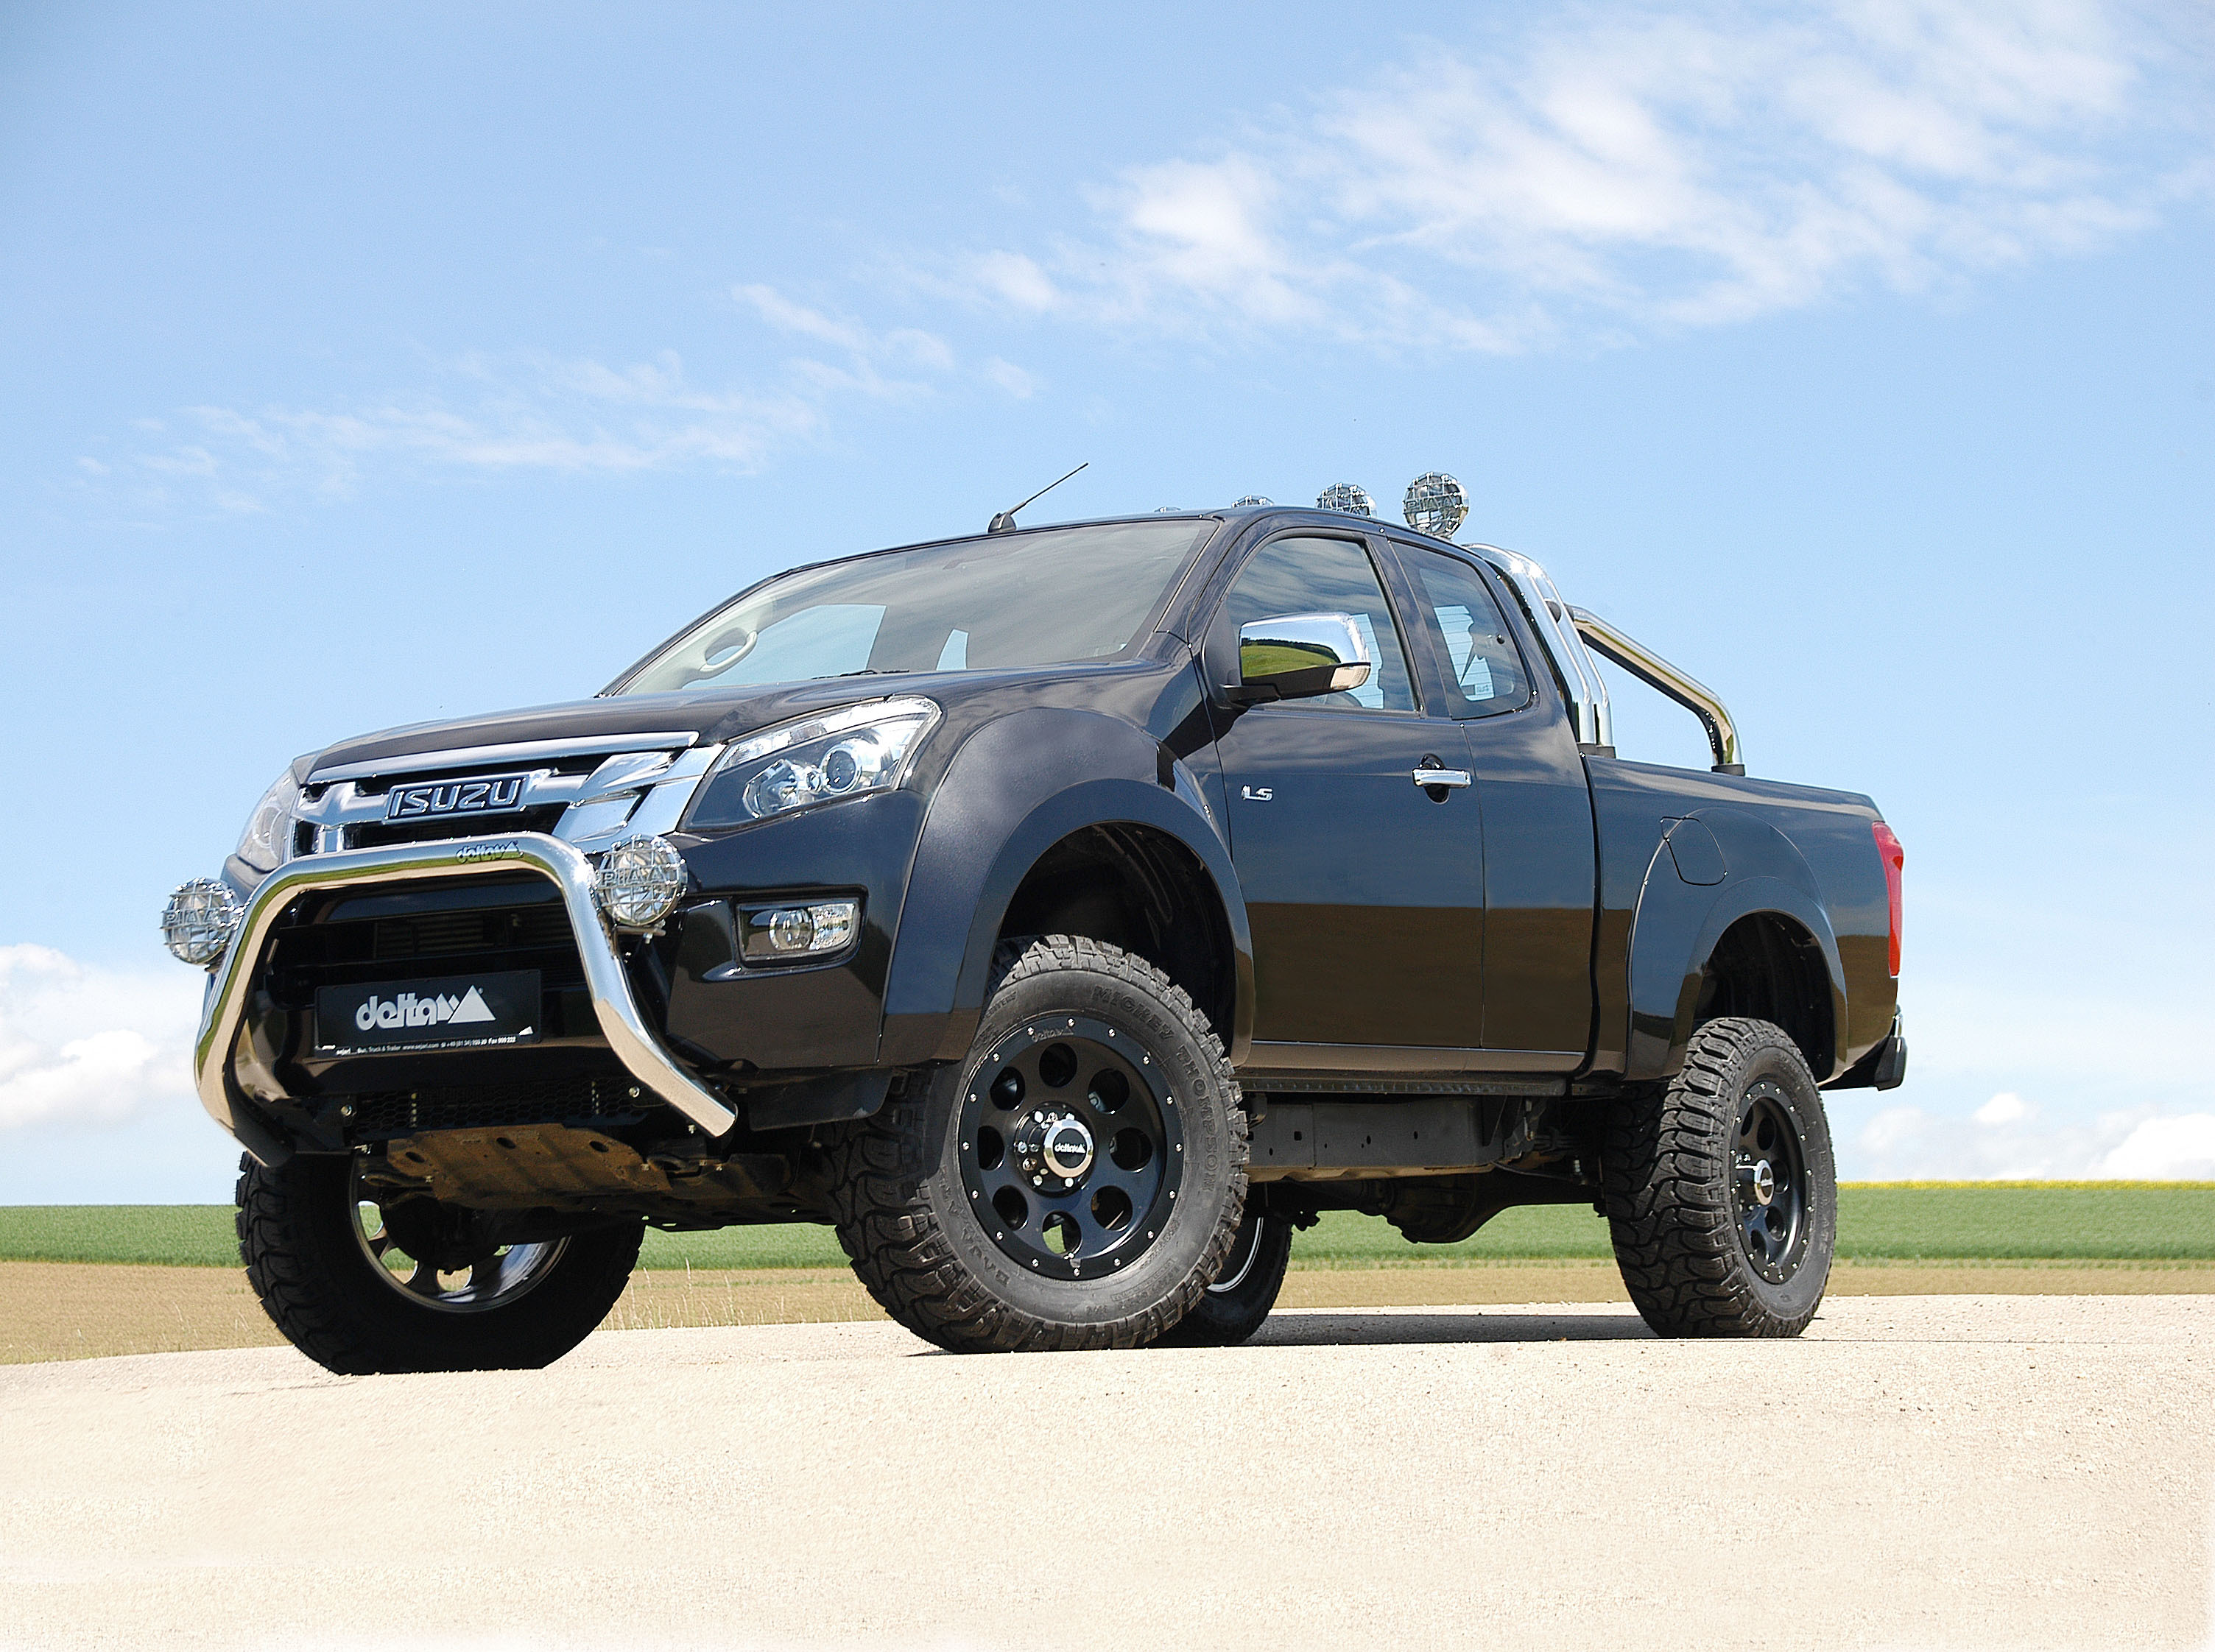 isuzu d max par delta 4x4 le off roader. Black Bedroom Furniture Sets. Home Design Ideas